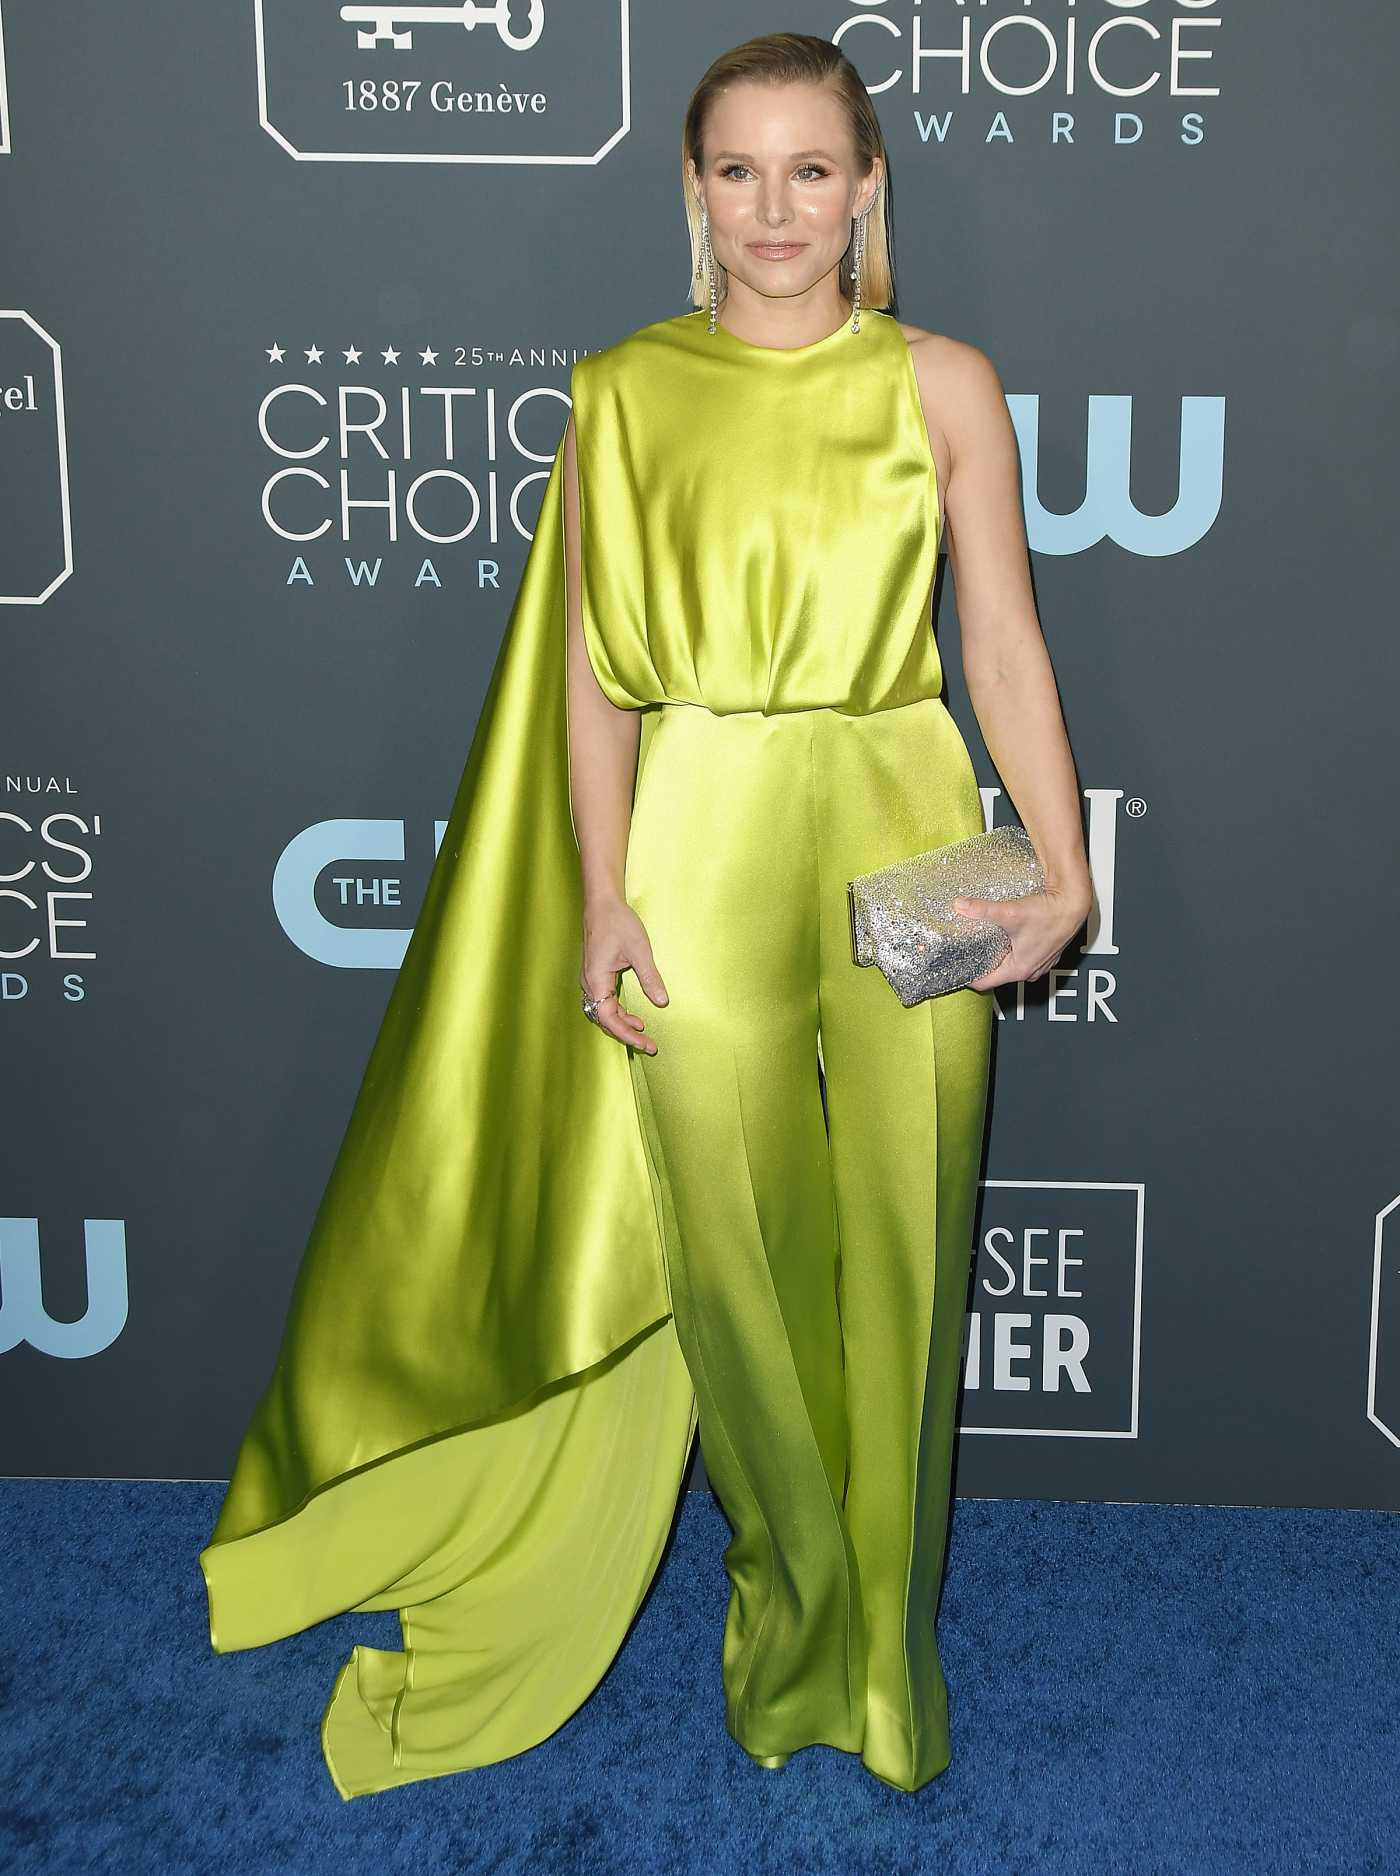 Kristen Bell Attends the 25th Annual Critics Choice Awards in Santa Monica 01/12/2020